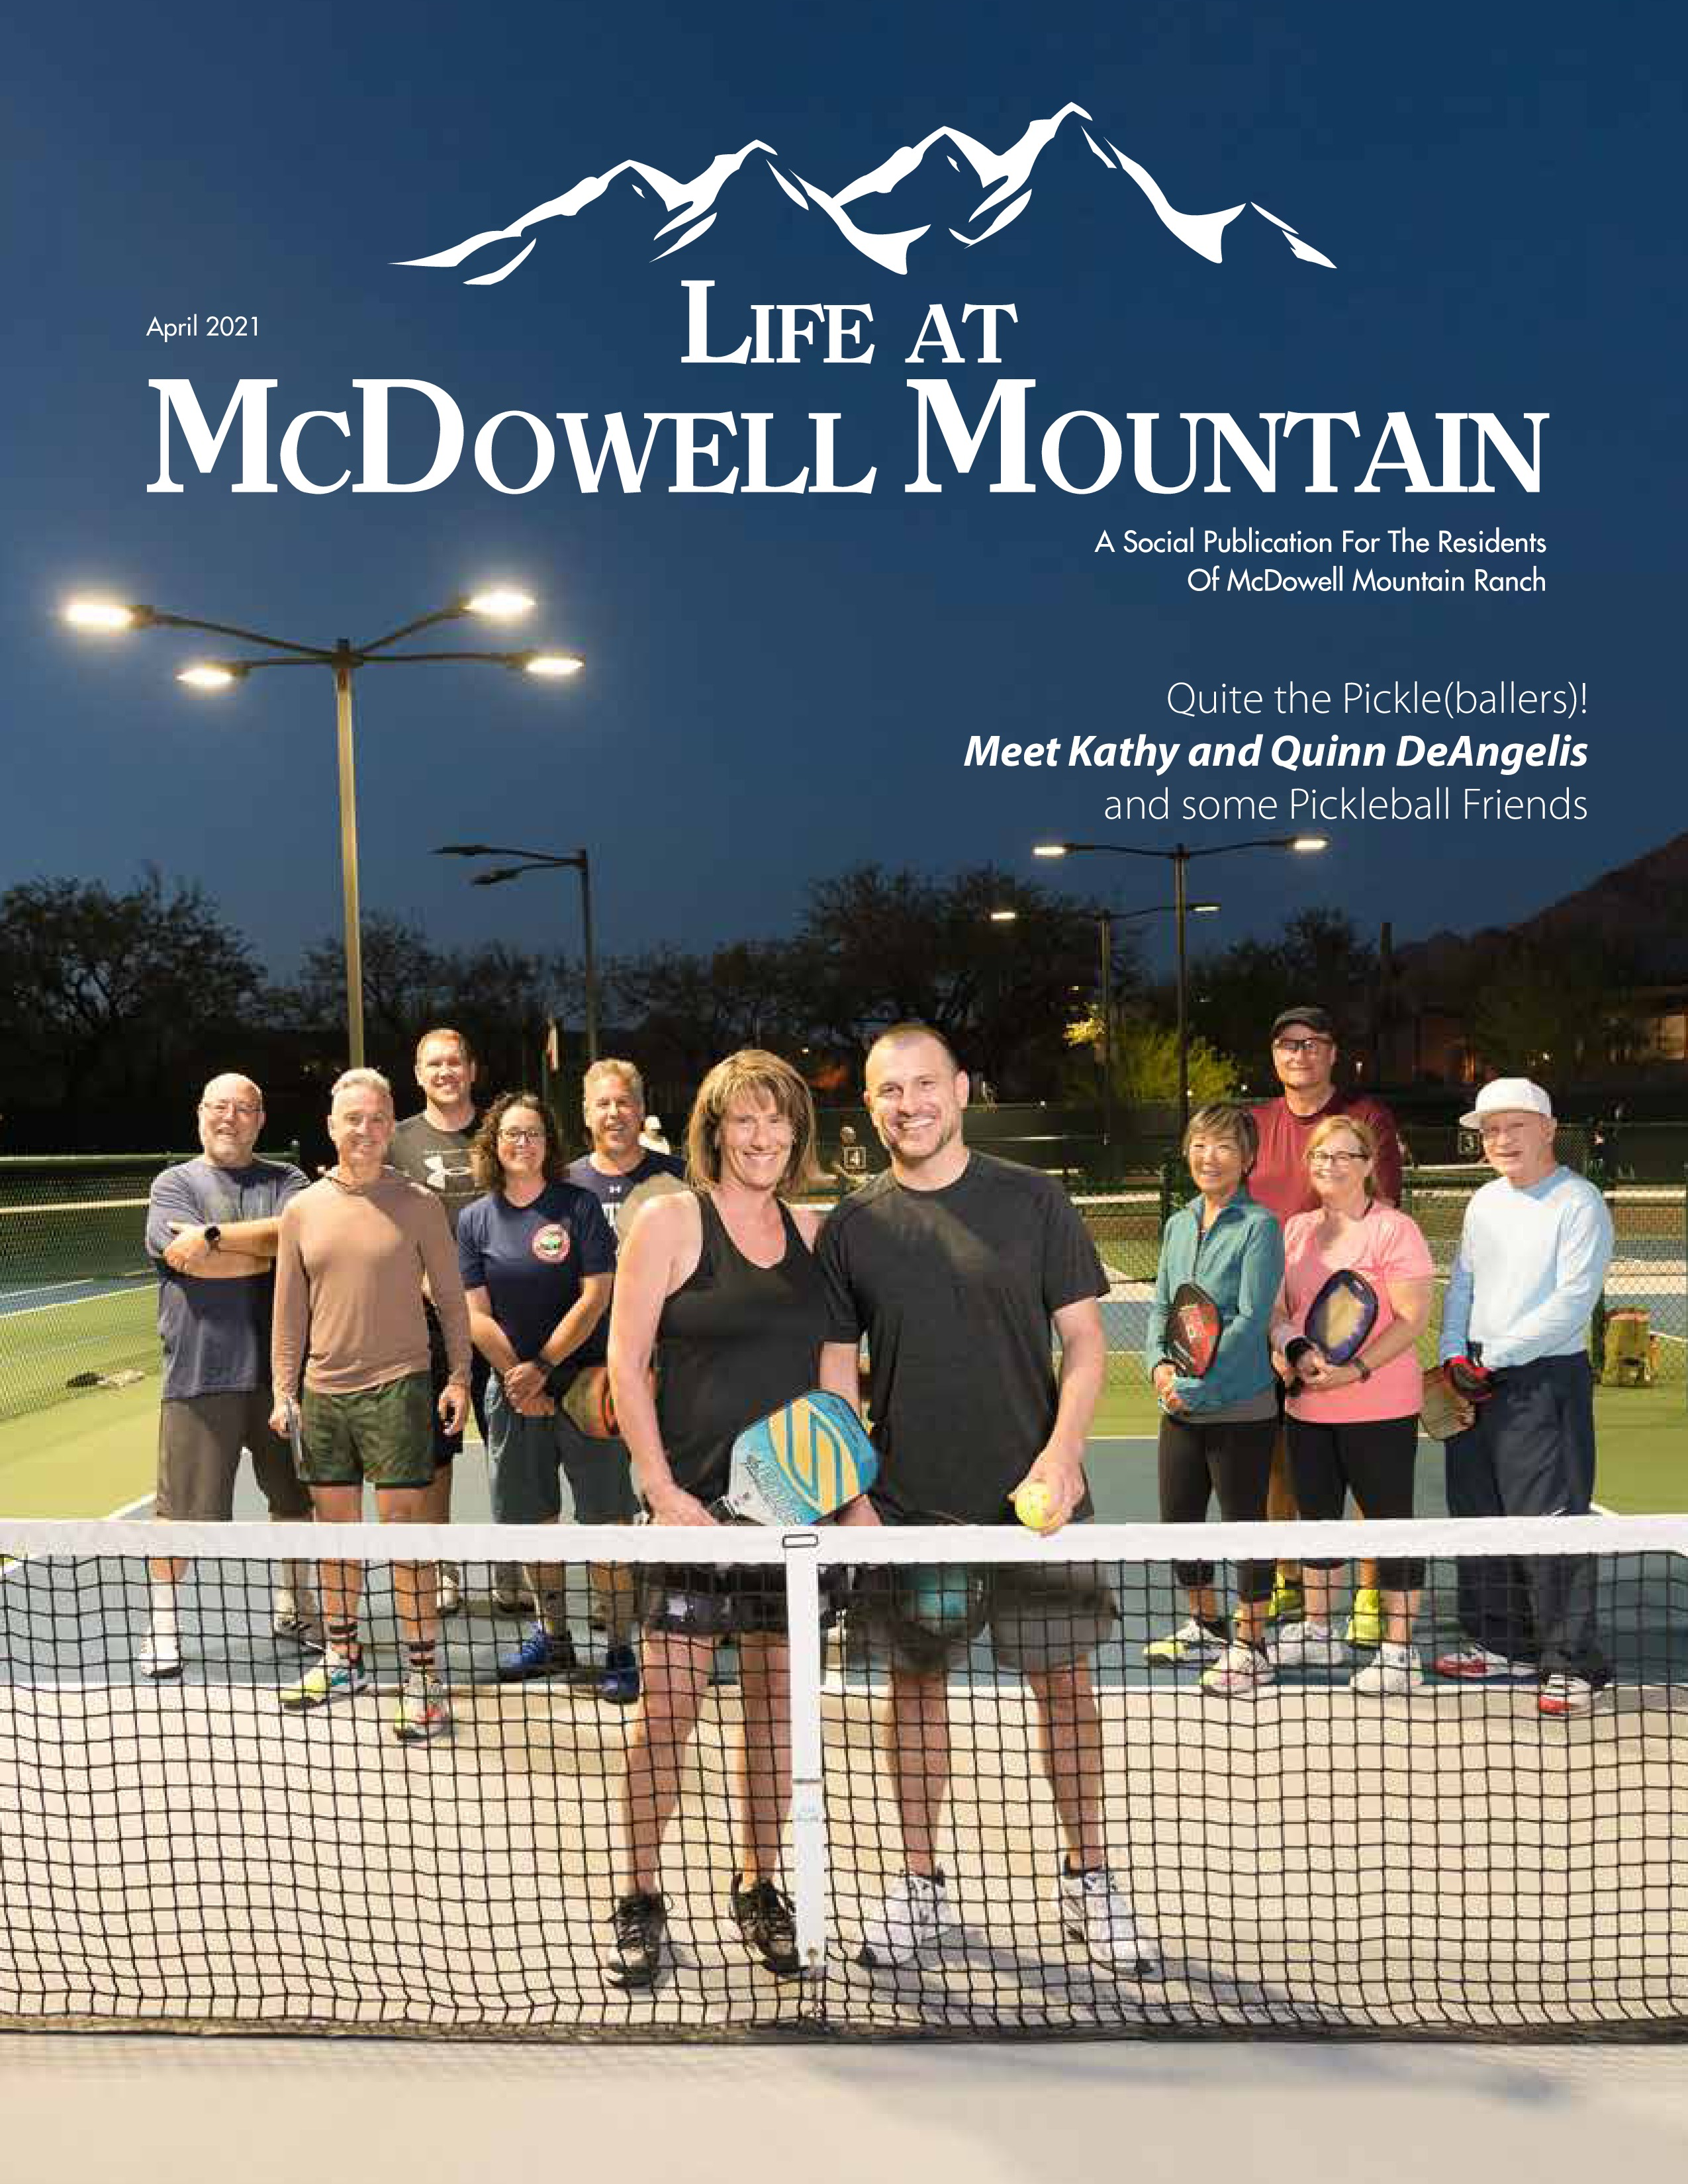 Life at McDowell Mountain 2021-04-01